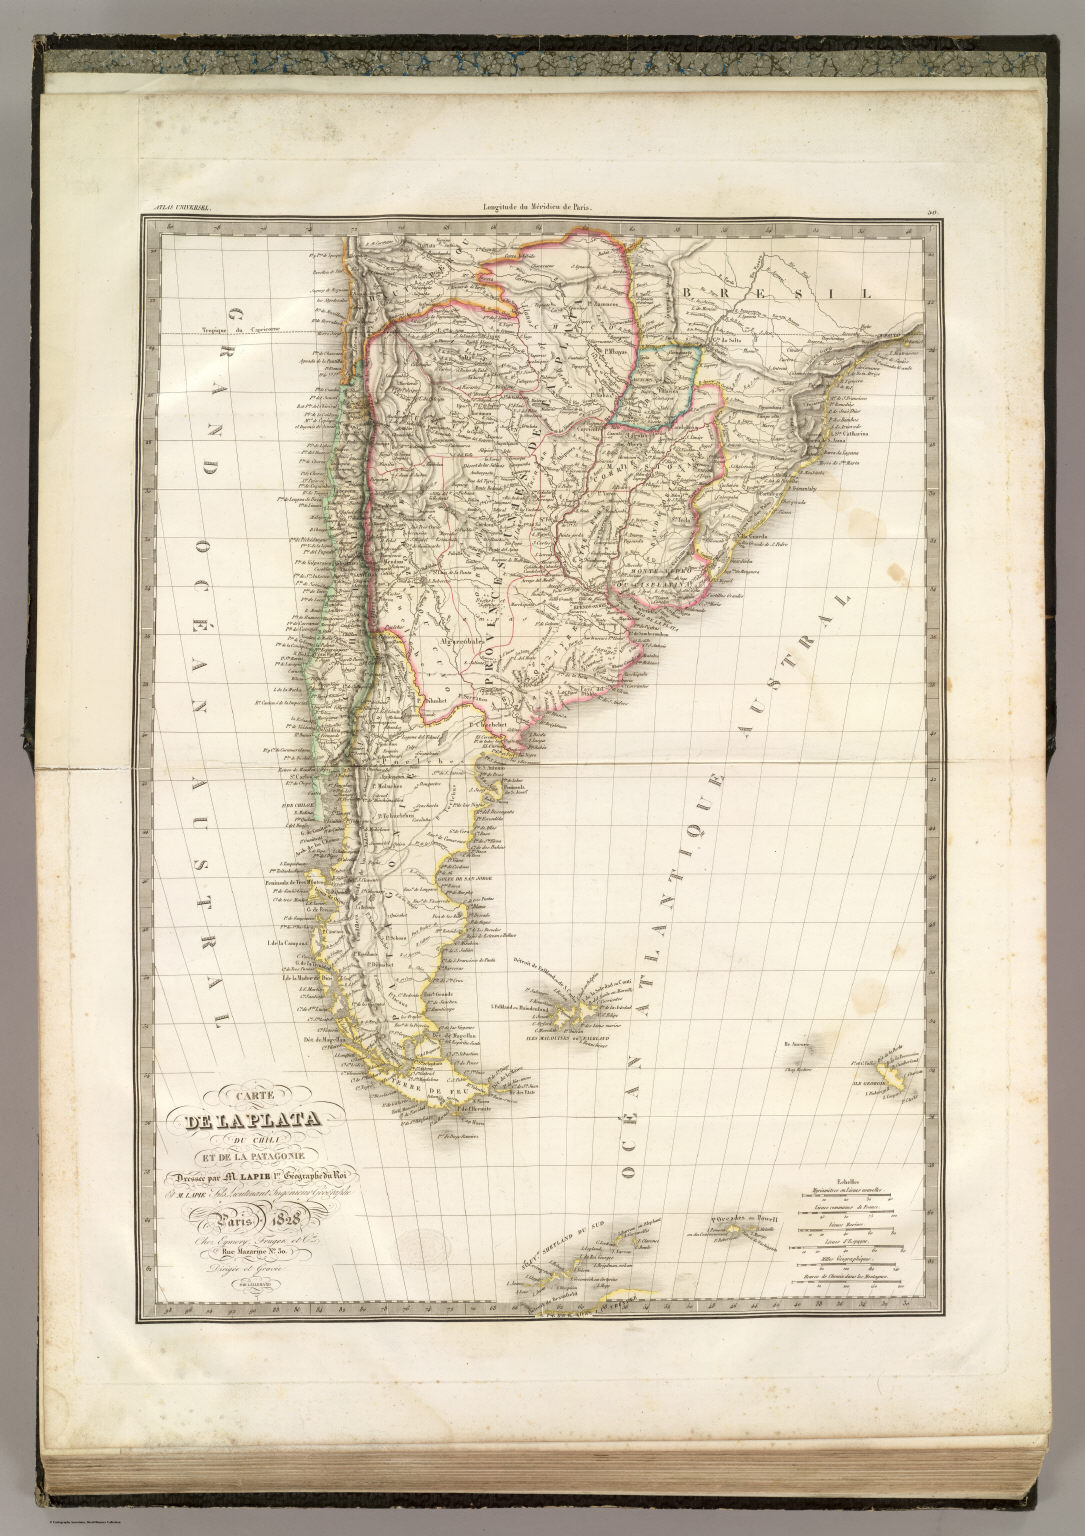 La Plata Chili Patagonie David Rumsey Historical Map Collection